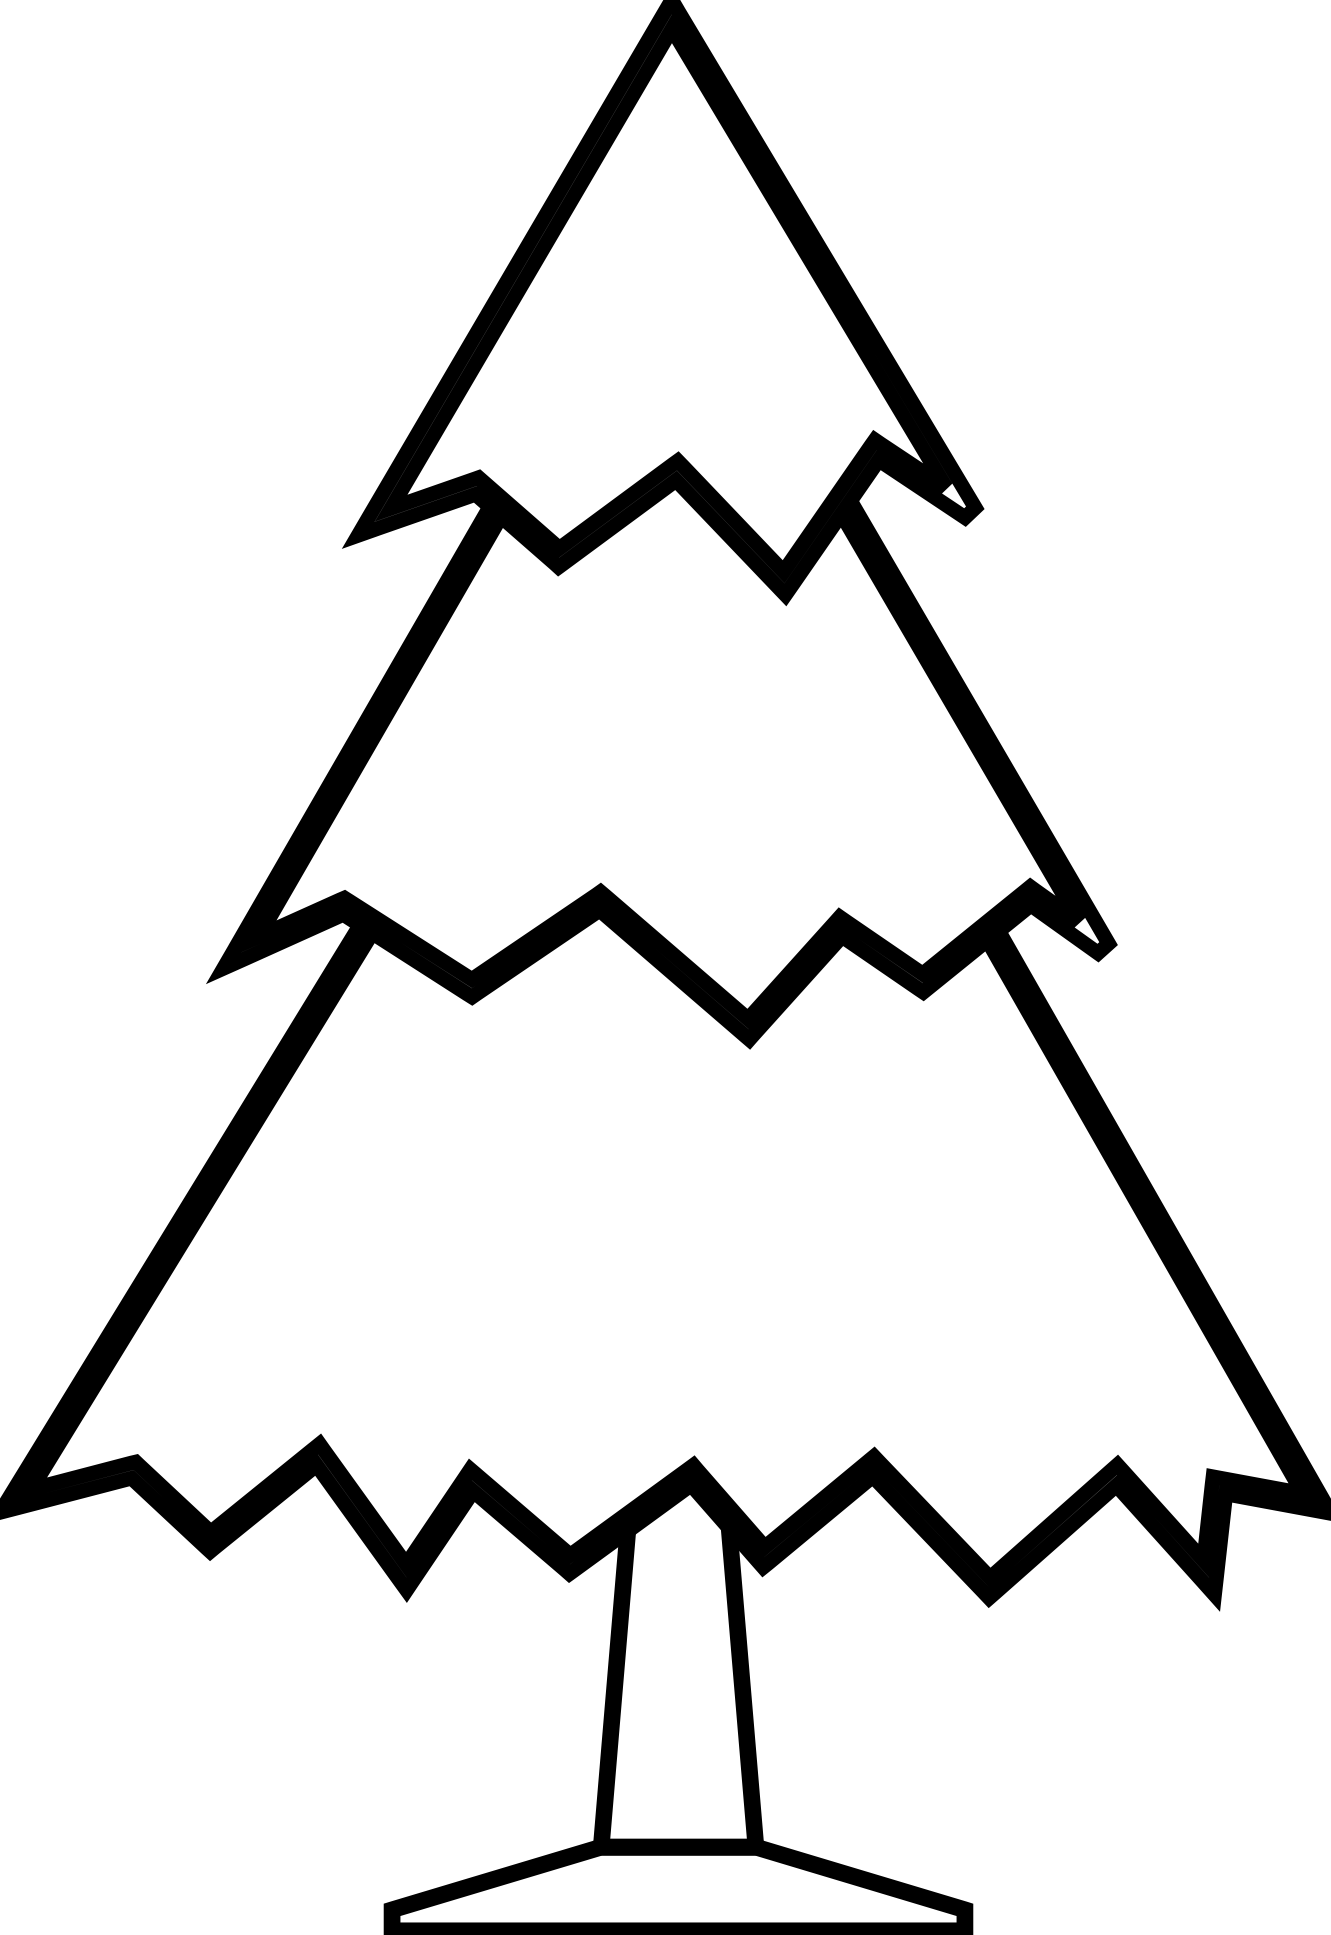 Cnc pine tree scenery clipart.